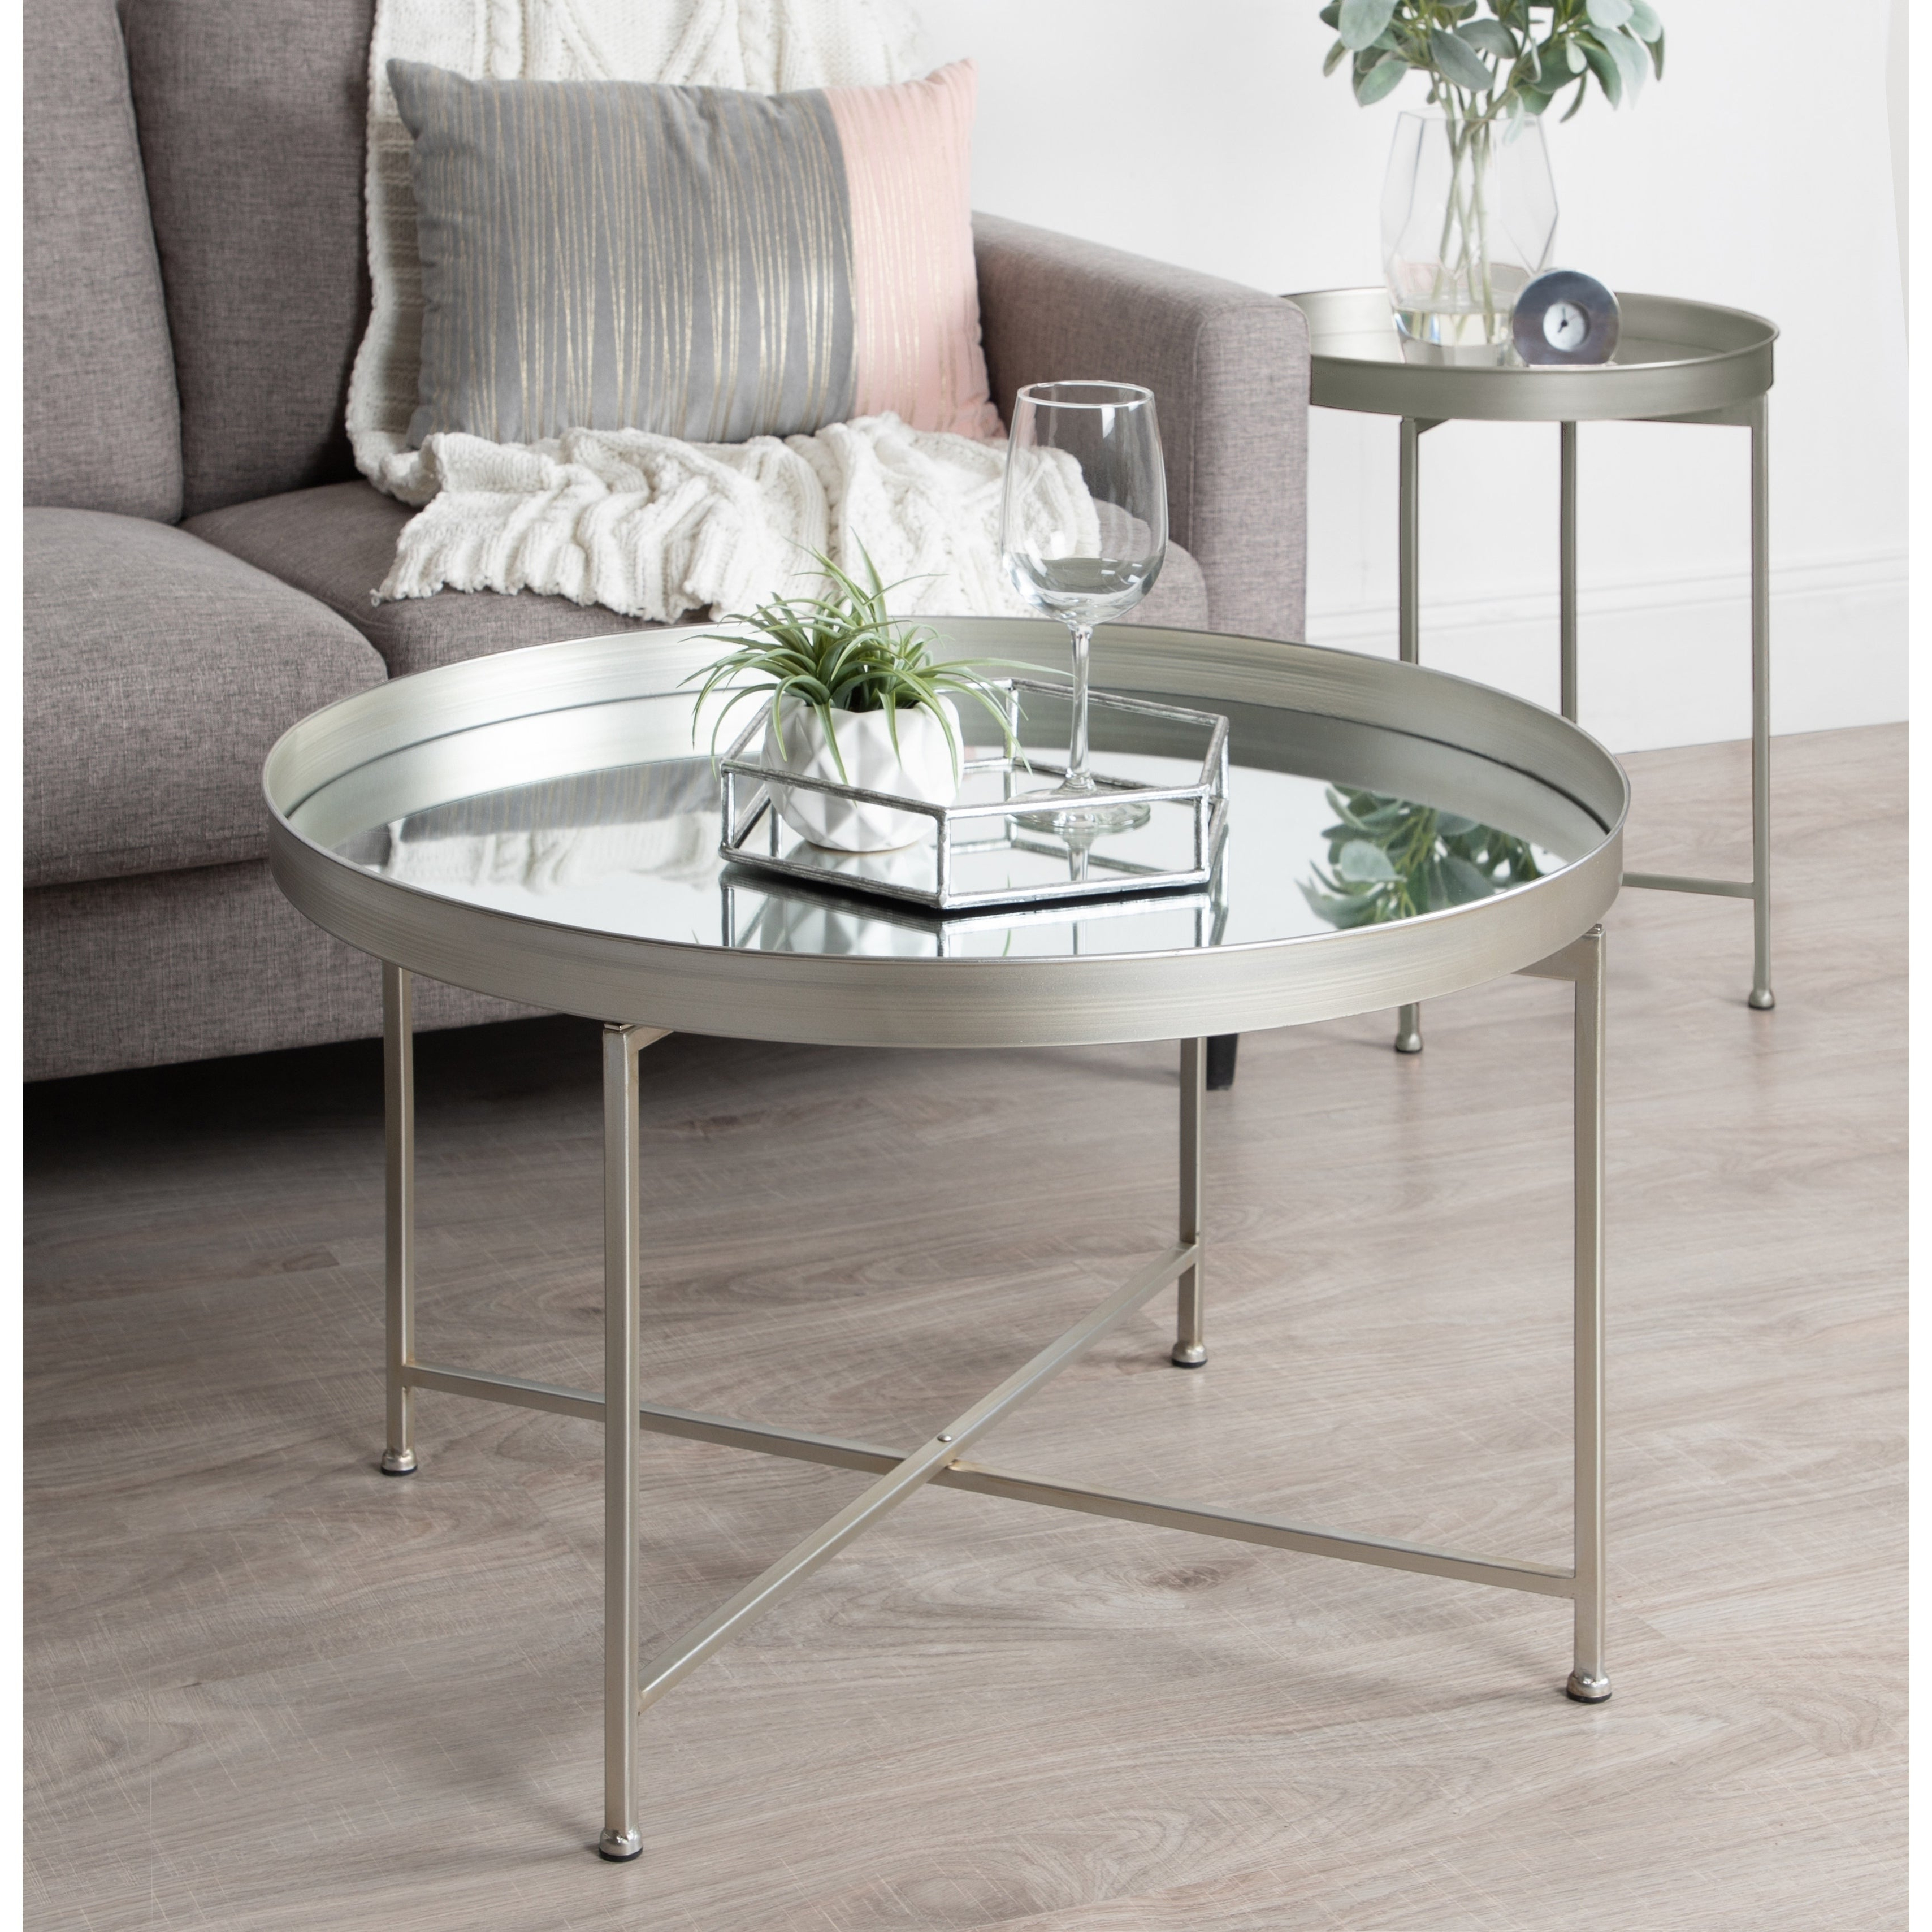 Fashionable Mitera Round Metal Glass Nesting Coffee Tables With Kate And Laurel Celia Metal/glass Round Mirrored Coffee Table (View 3 of 20)